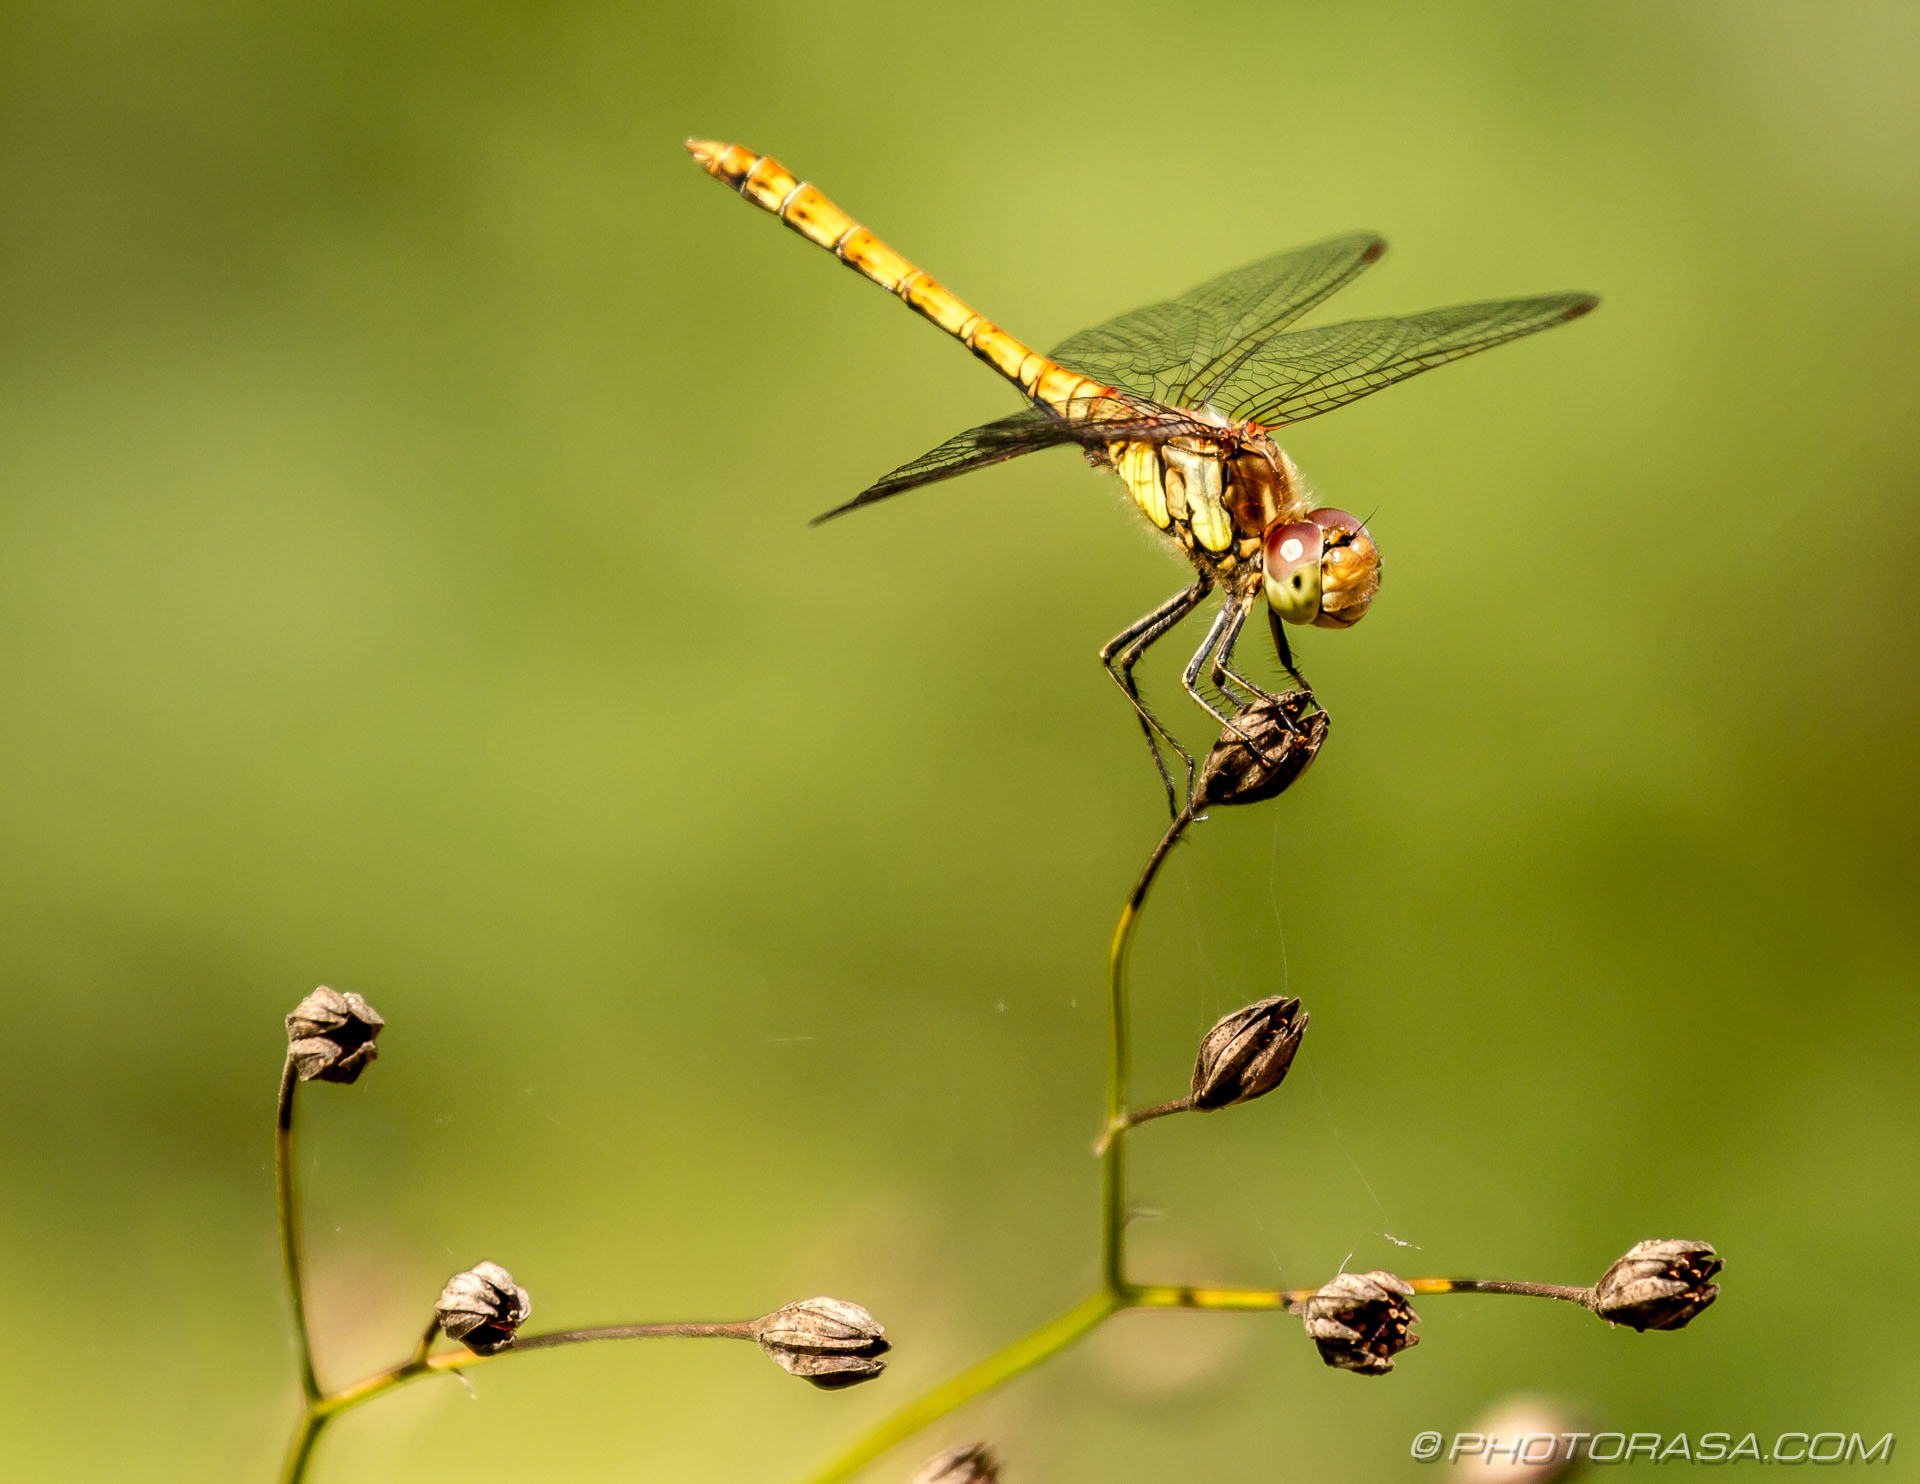 https://photorasa.com/dragonflies/female-common-darter-perched-on-plant-3/